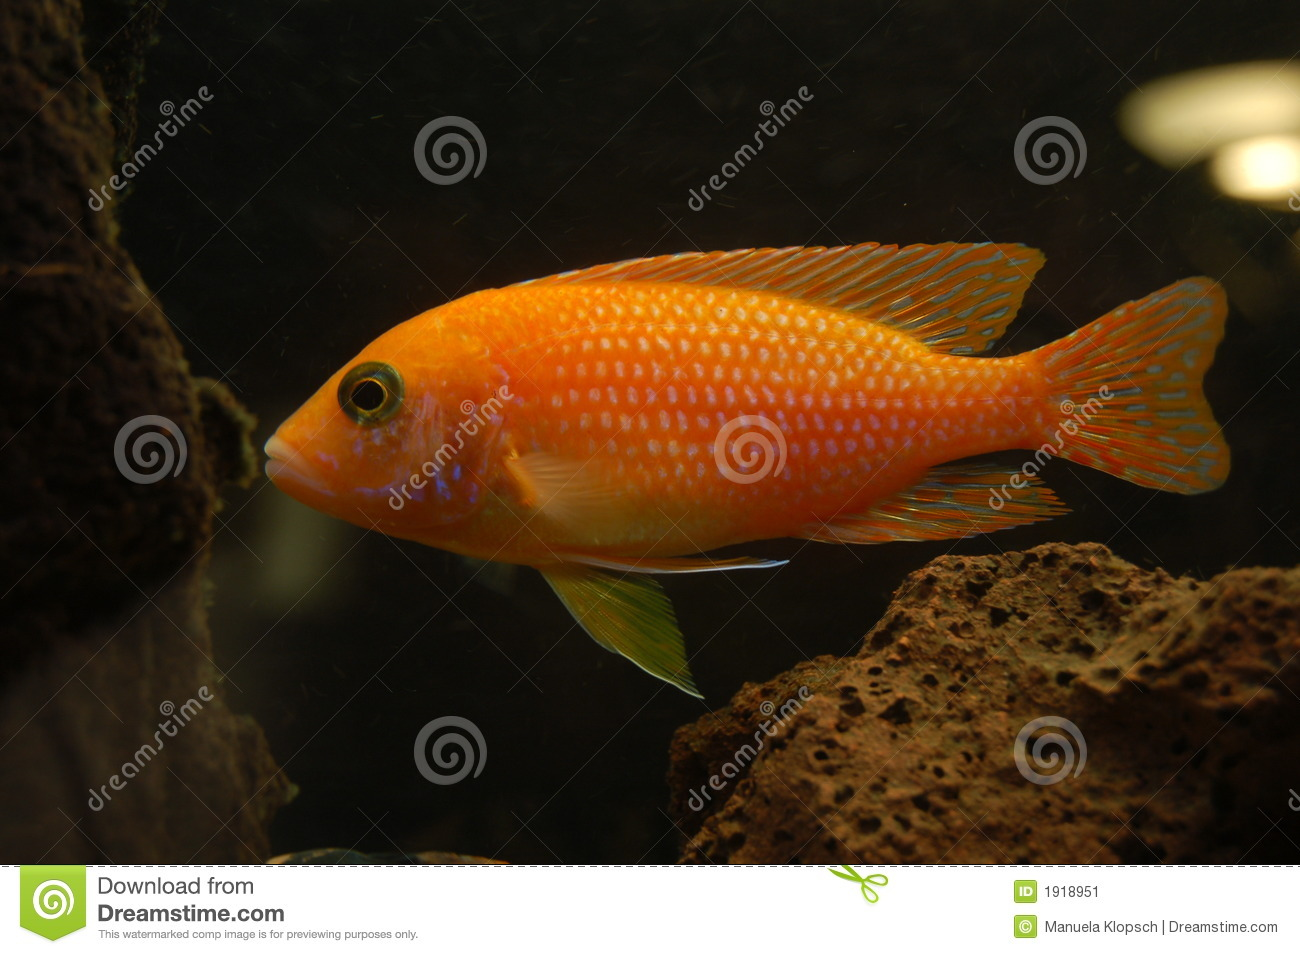 Malawisee fish stock image image 1918951 for What do fish see